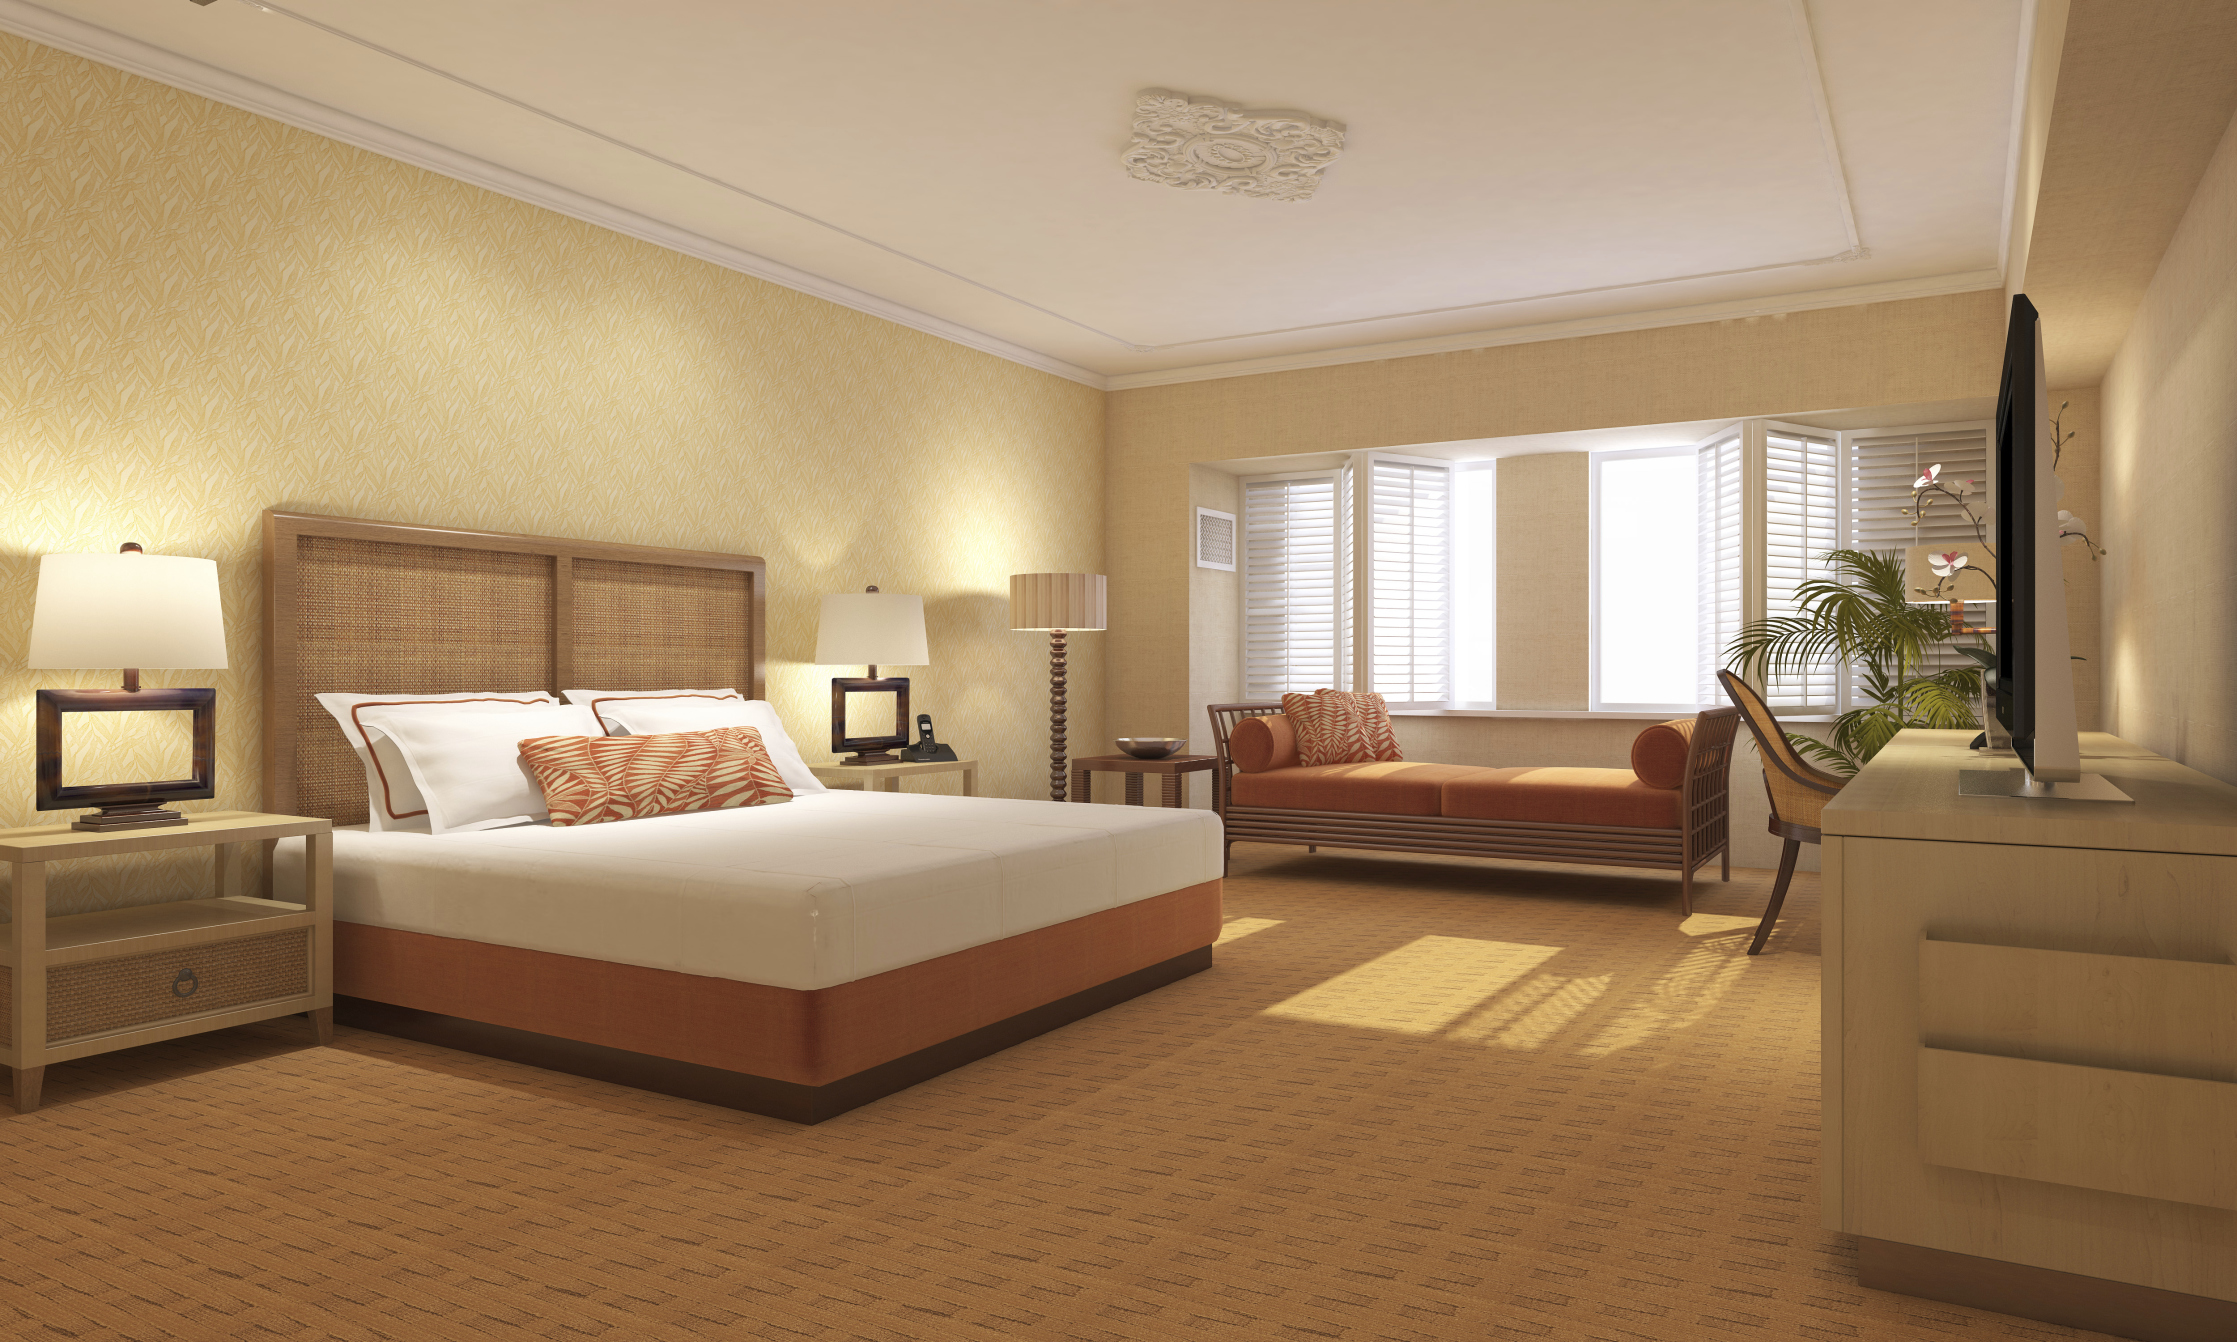 Serene Spaces: 5 Tips for Creating a Calm Bedroom